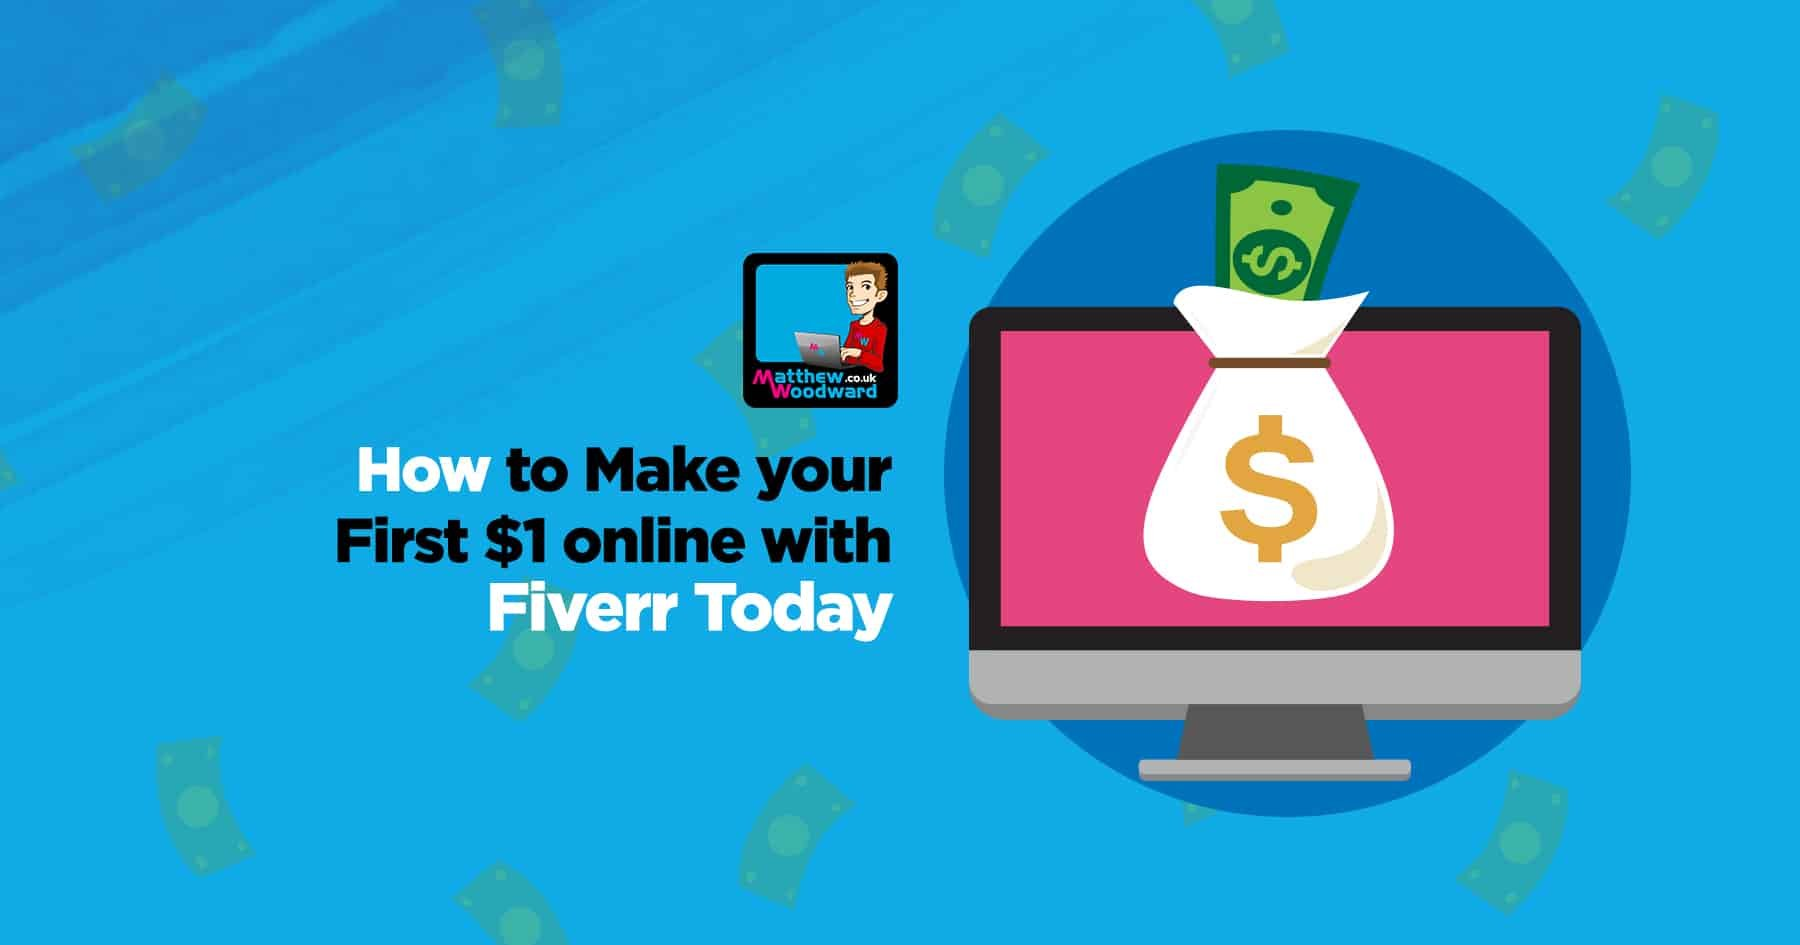 How To Make Money On Fiverr - Make Your First $1 Online TODAY